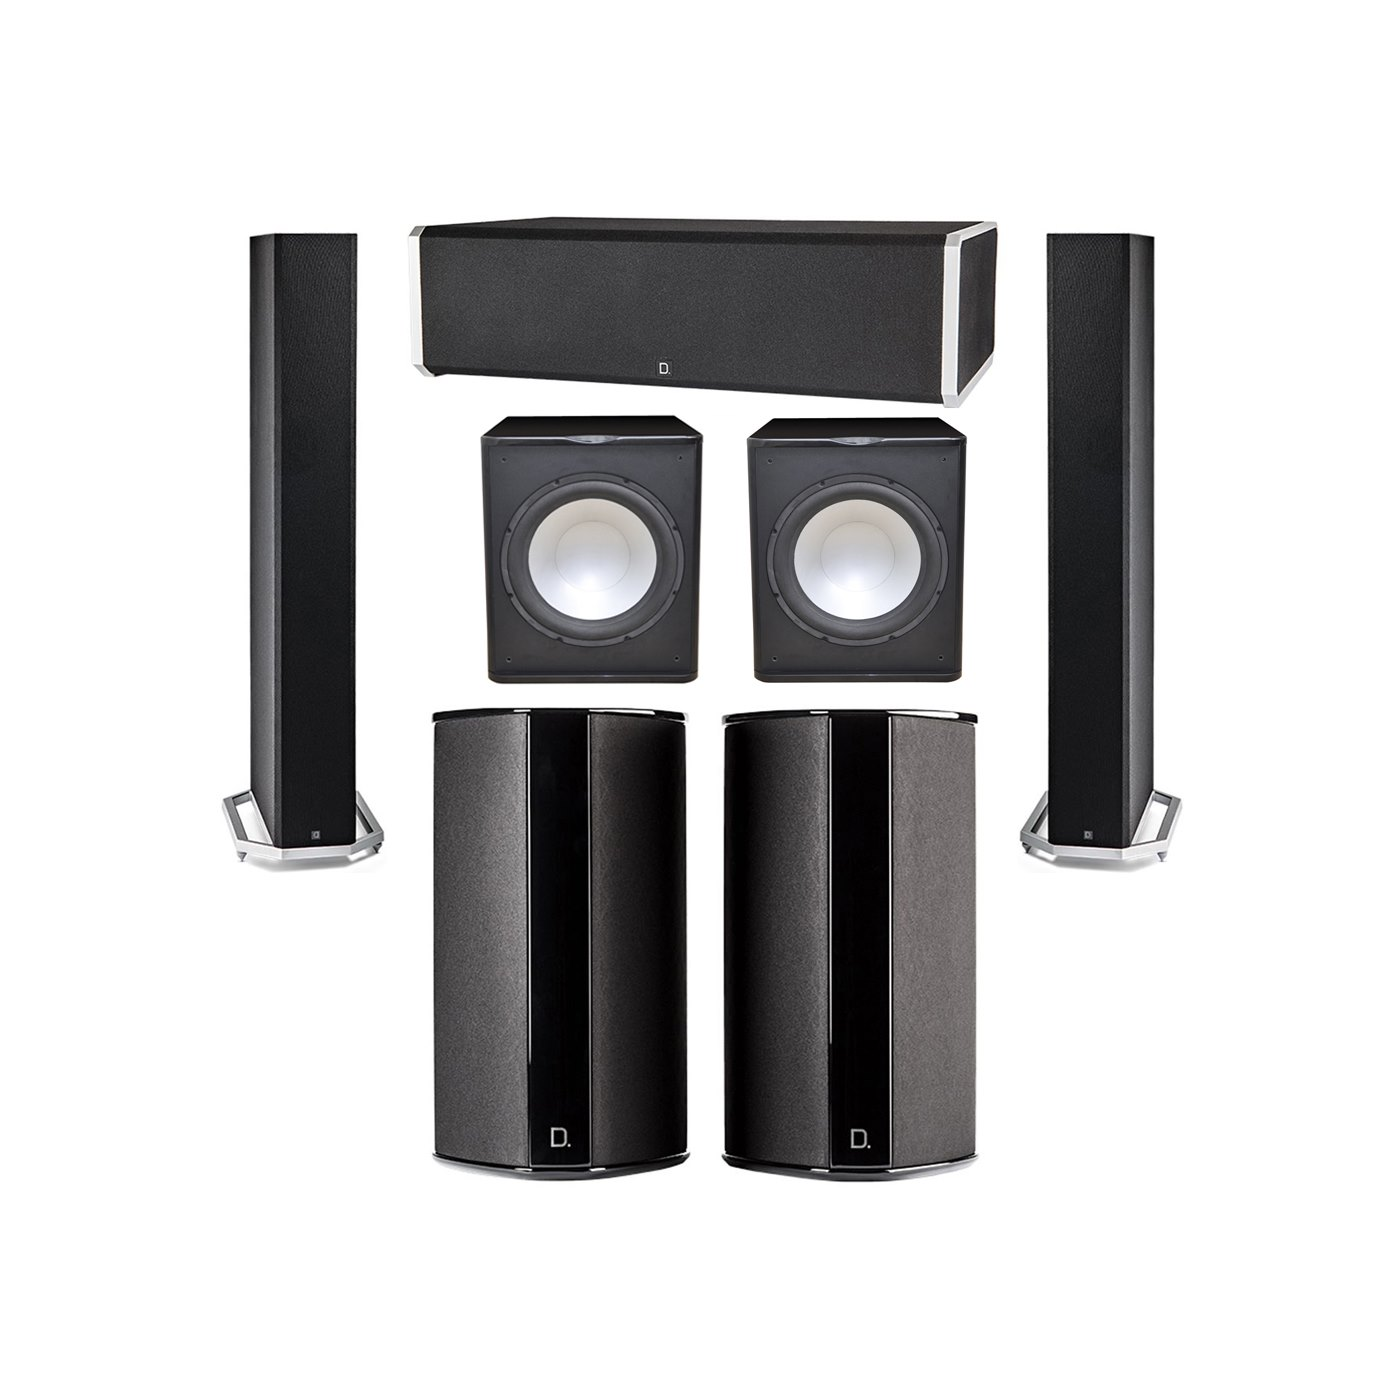 Definitive Technology 5.2 System with 2 BP9060 Tower Speakers, 1 CS9060 Center Channel Speaker, 2 SR9080 Surround Speaker, 2 Premier Acoustic PA-150 Subwoofer